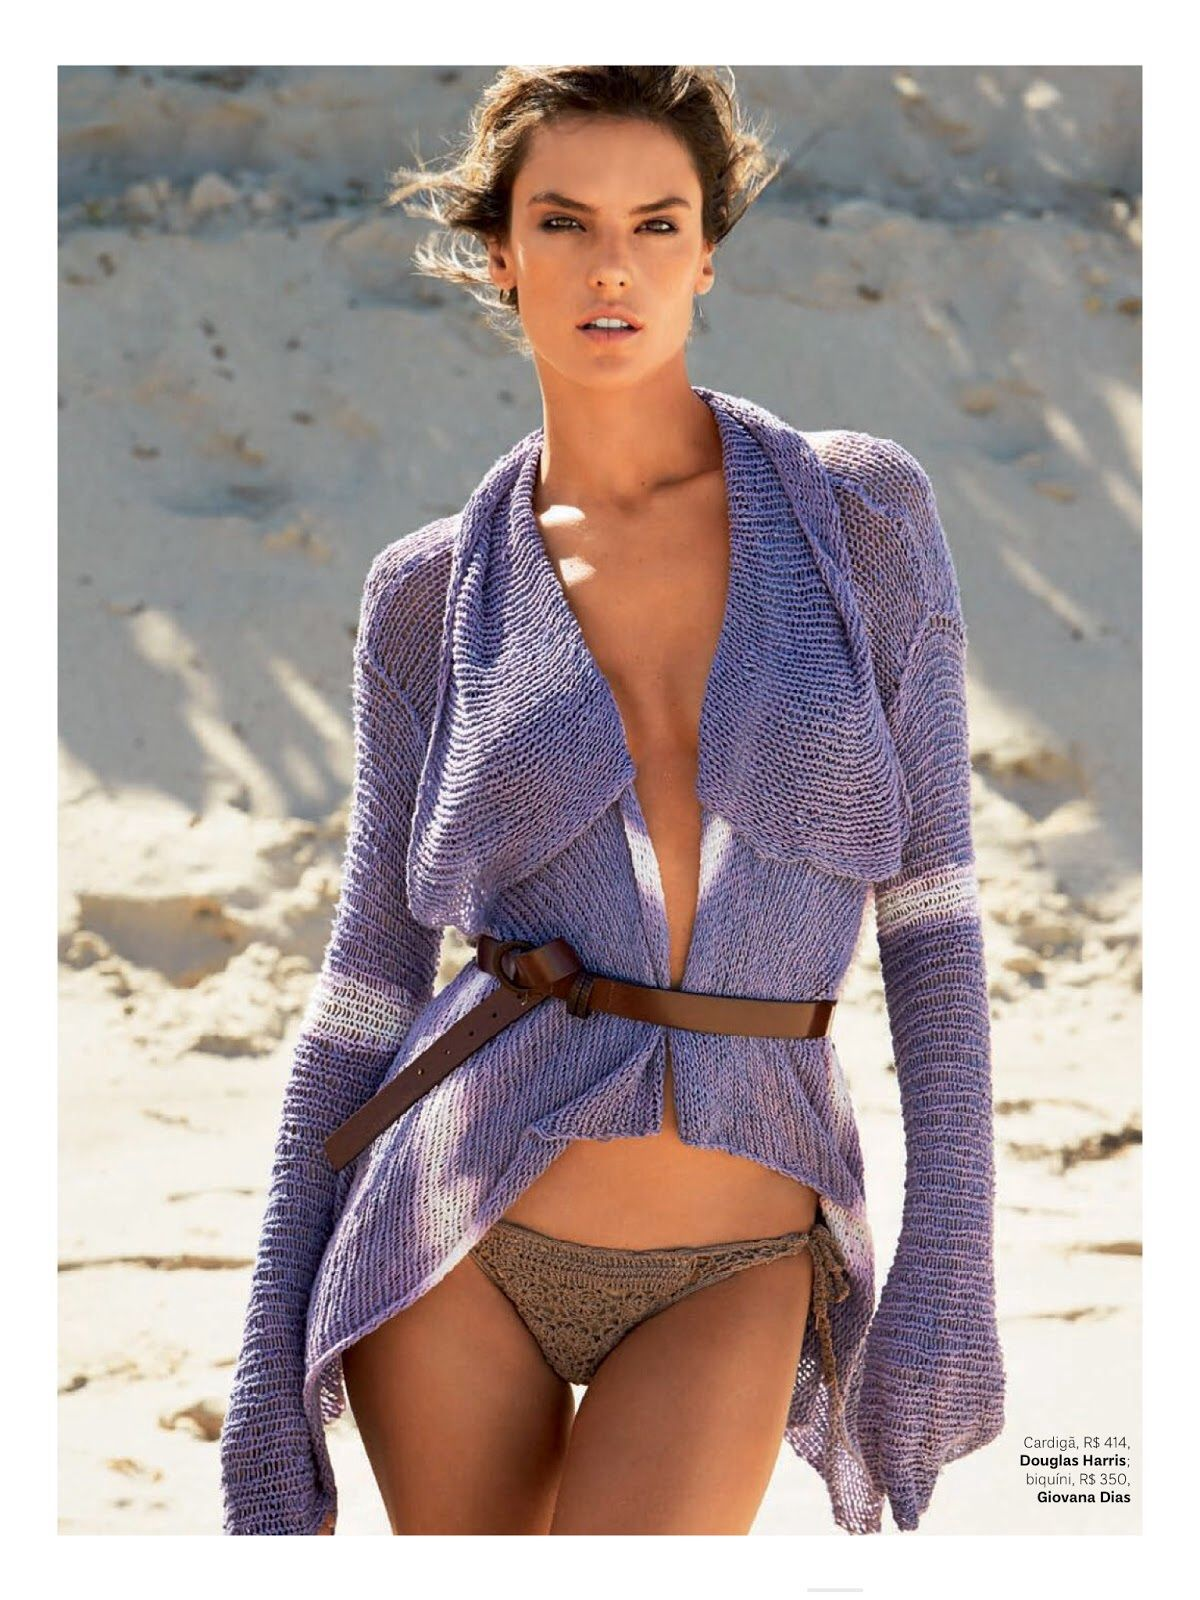 ALESSANDRA AMBROSIO in Vogue Magazine, January 2015 Issue